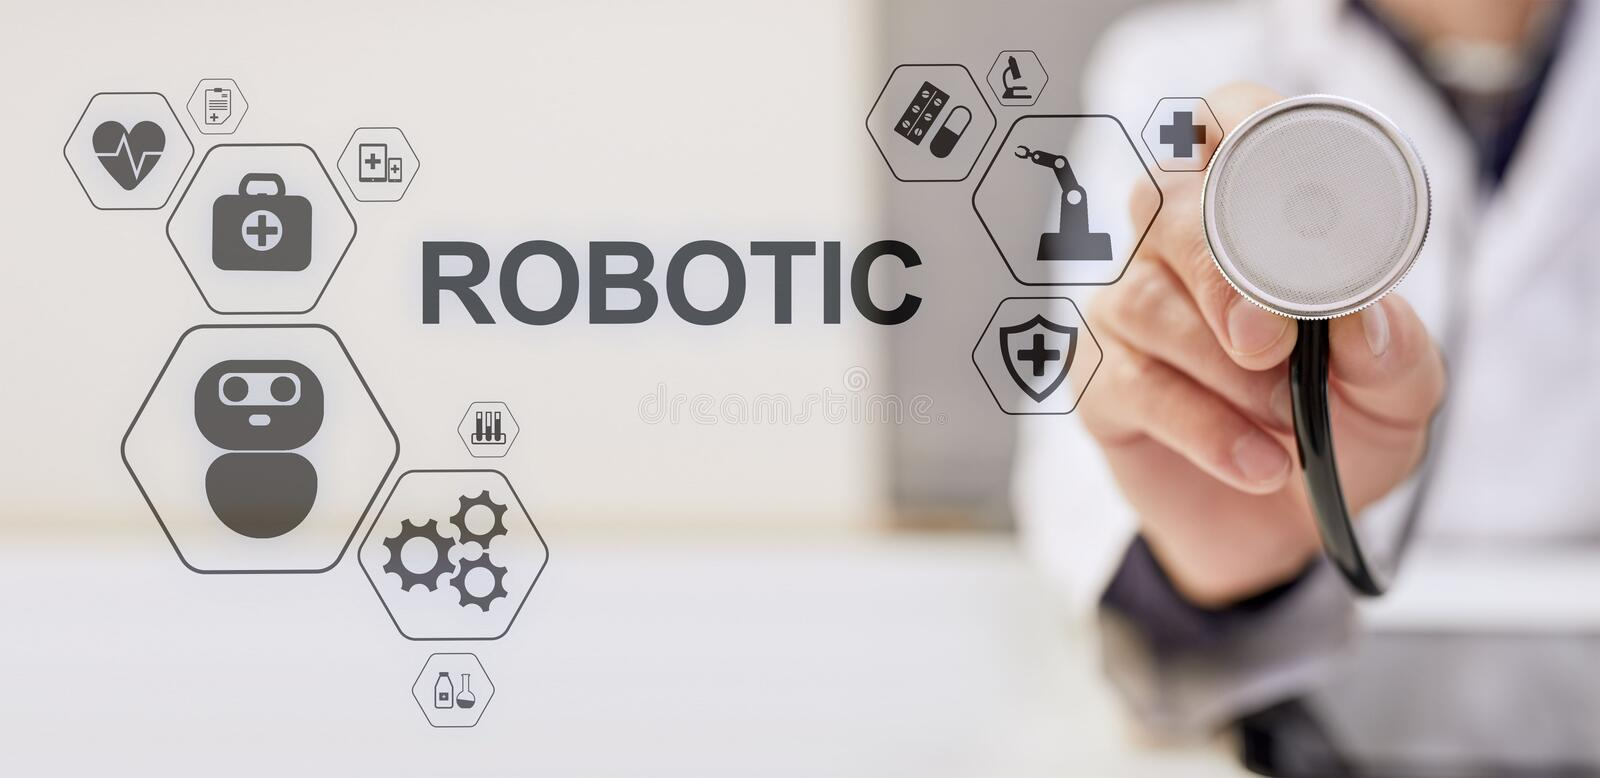 Medical robot rpa automation modern technology in medicine concept. Medical robot rpa automation modern technology in medicine concept stock photos